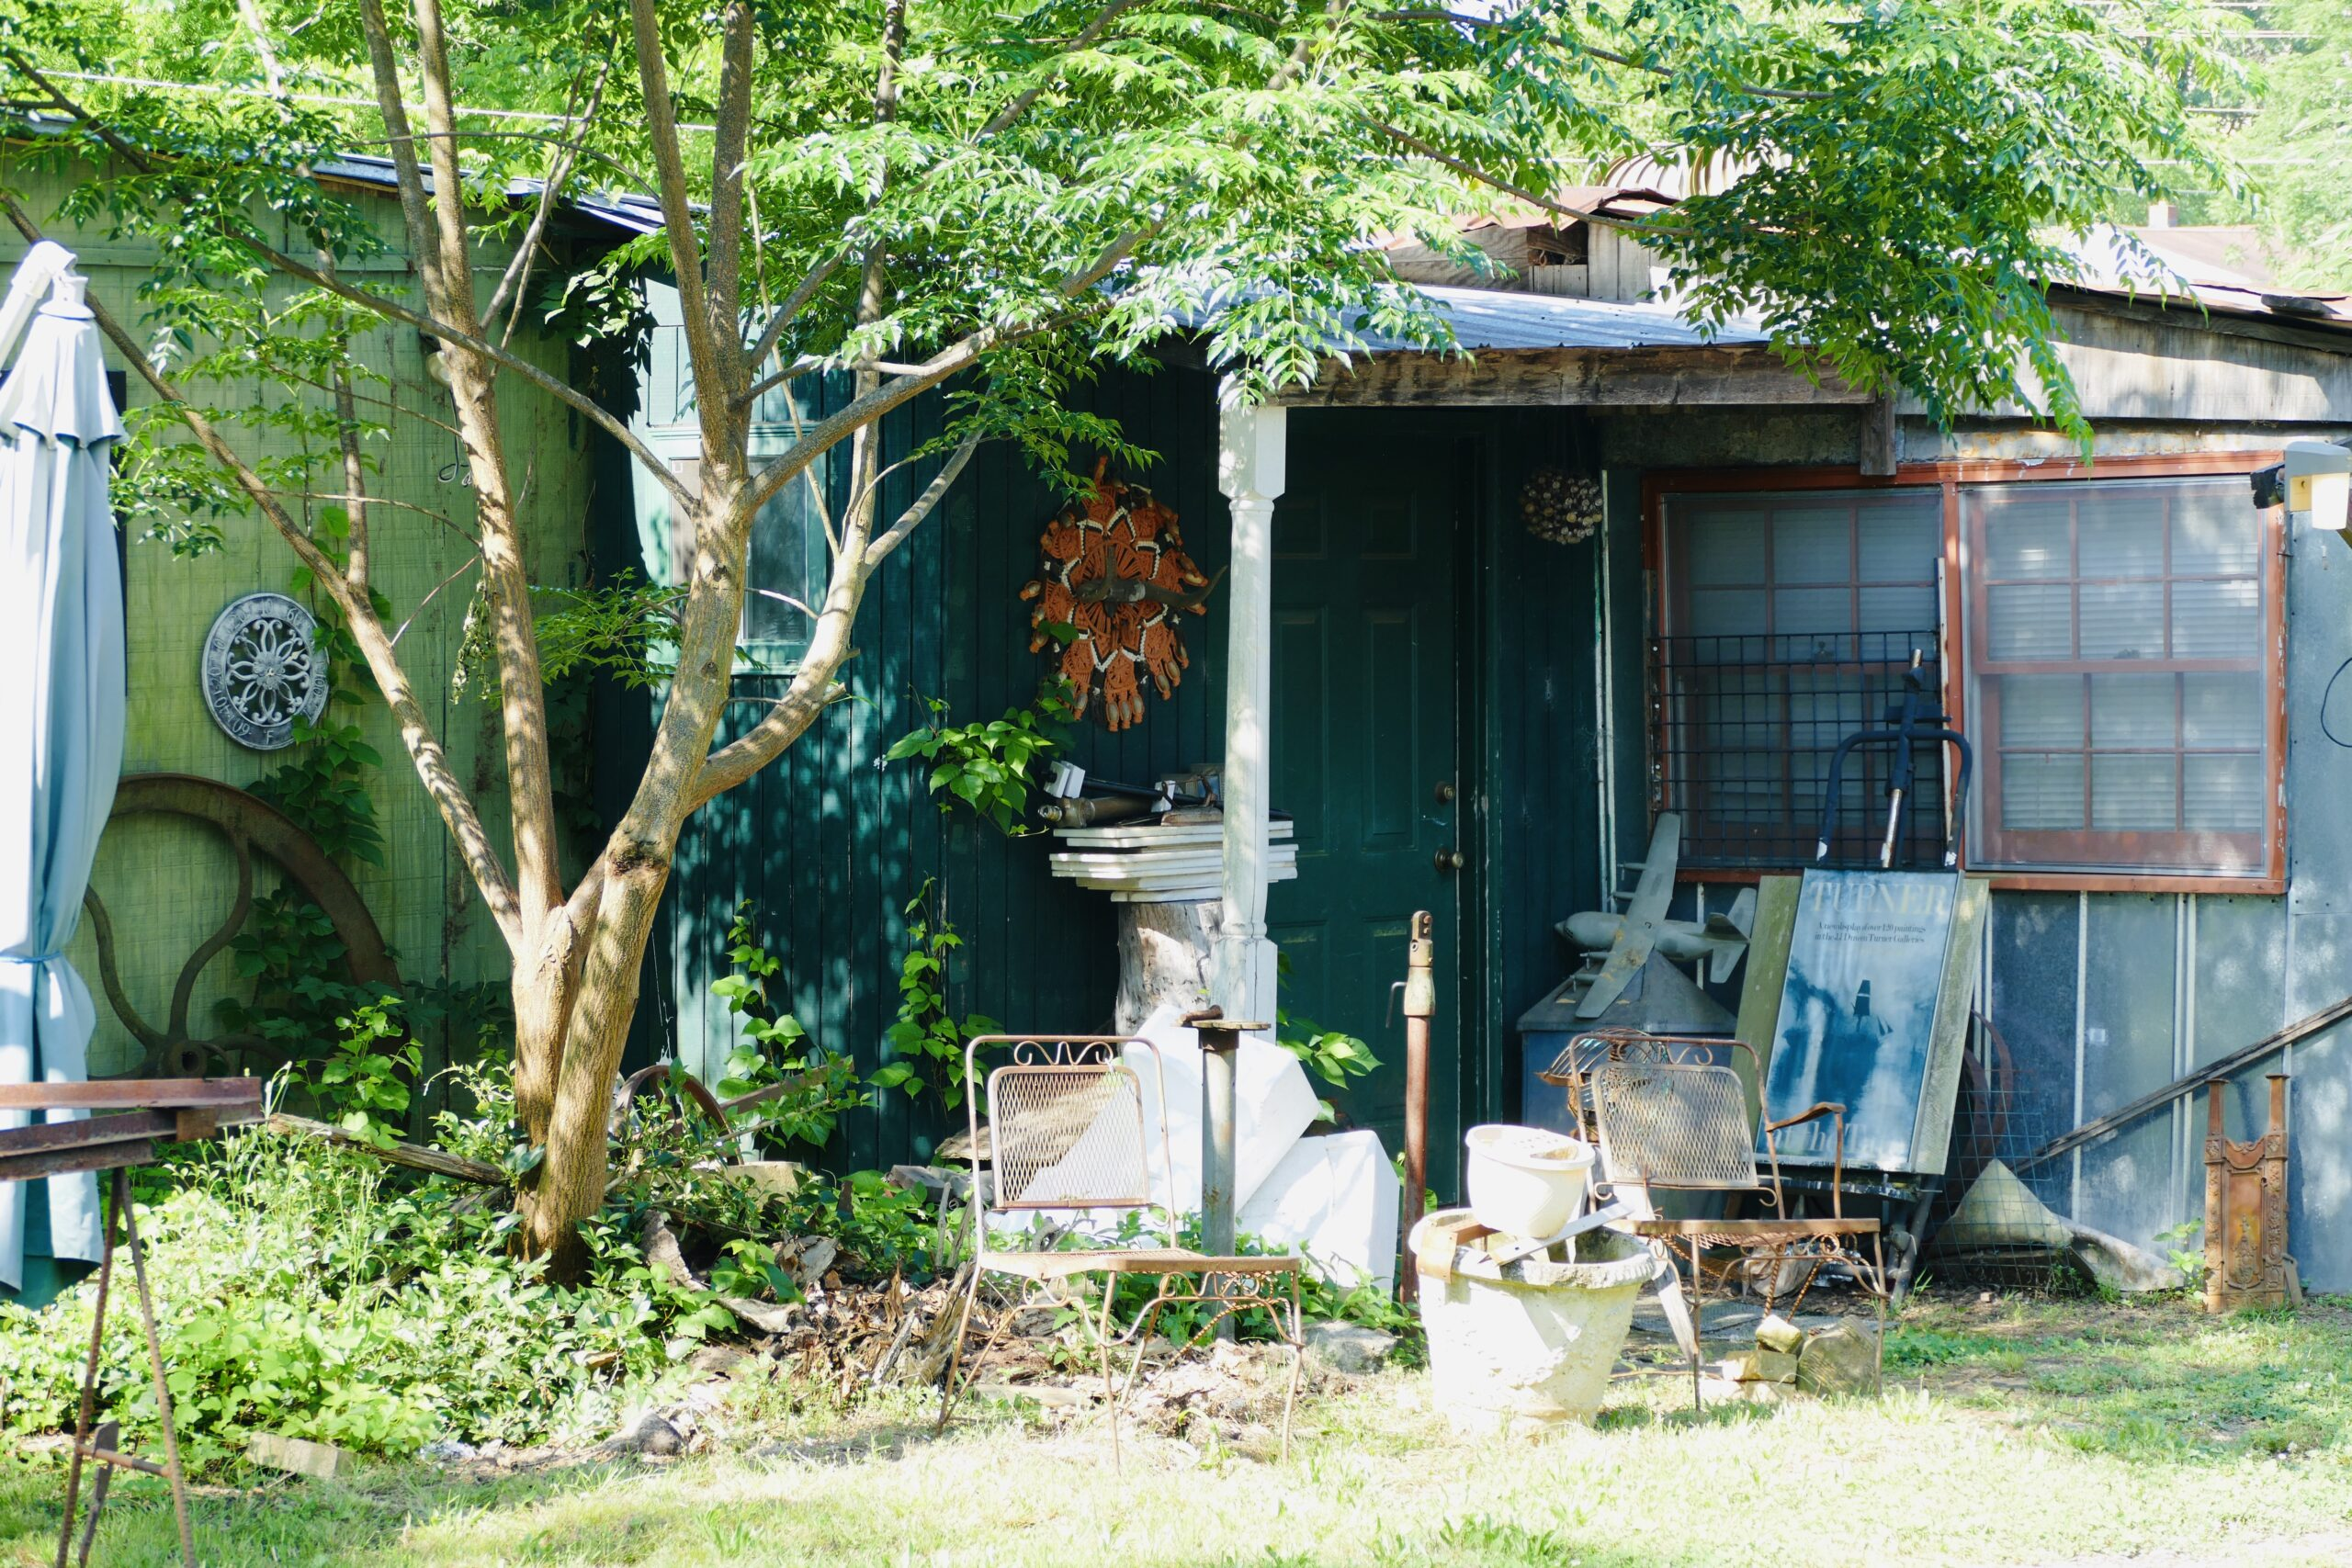 documenting vernacular landscapes during the pandemic, house with many artifacts